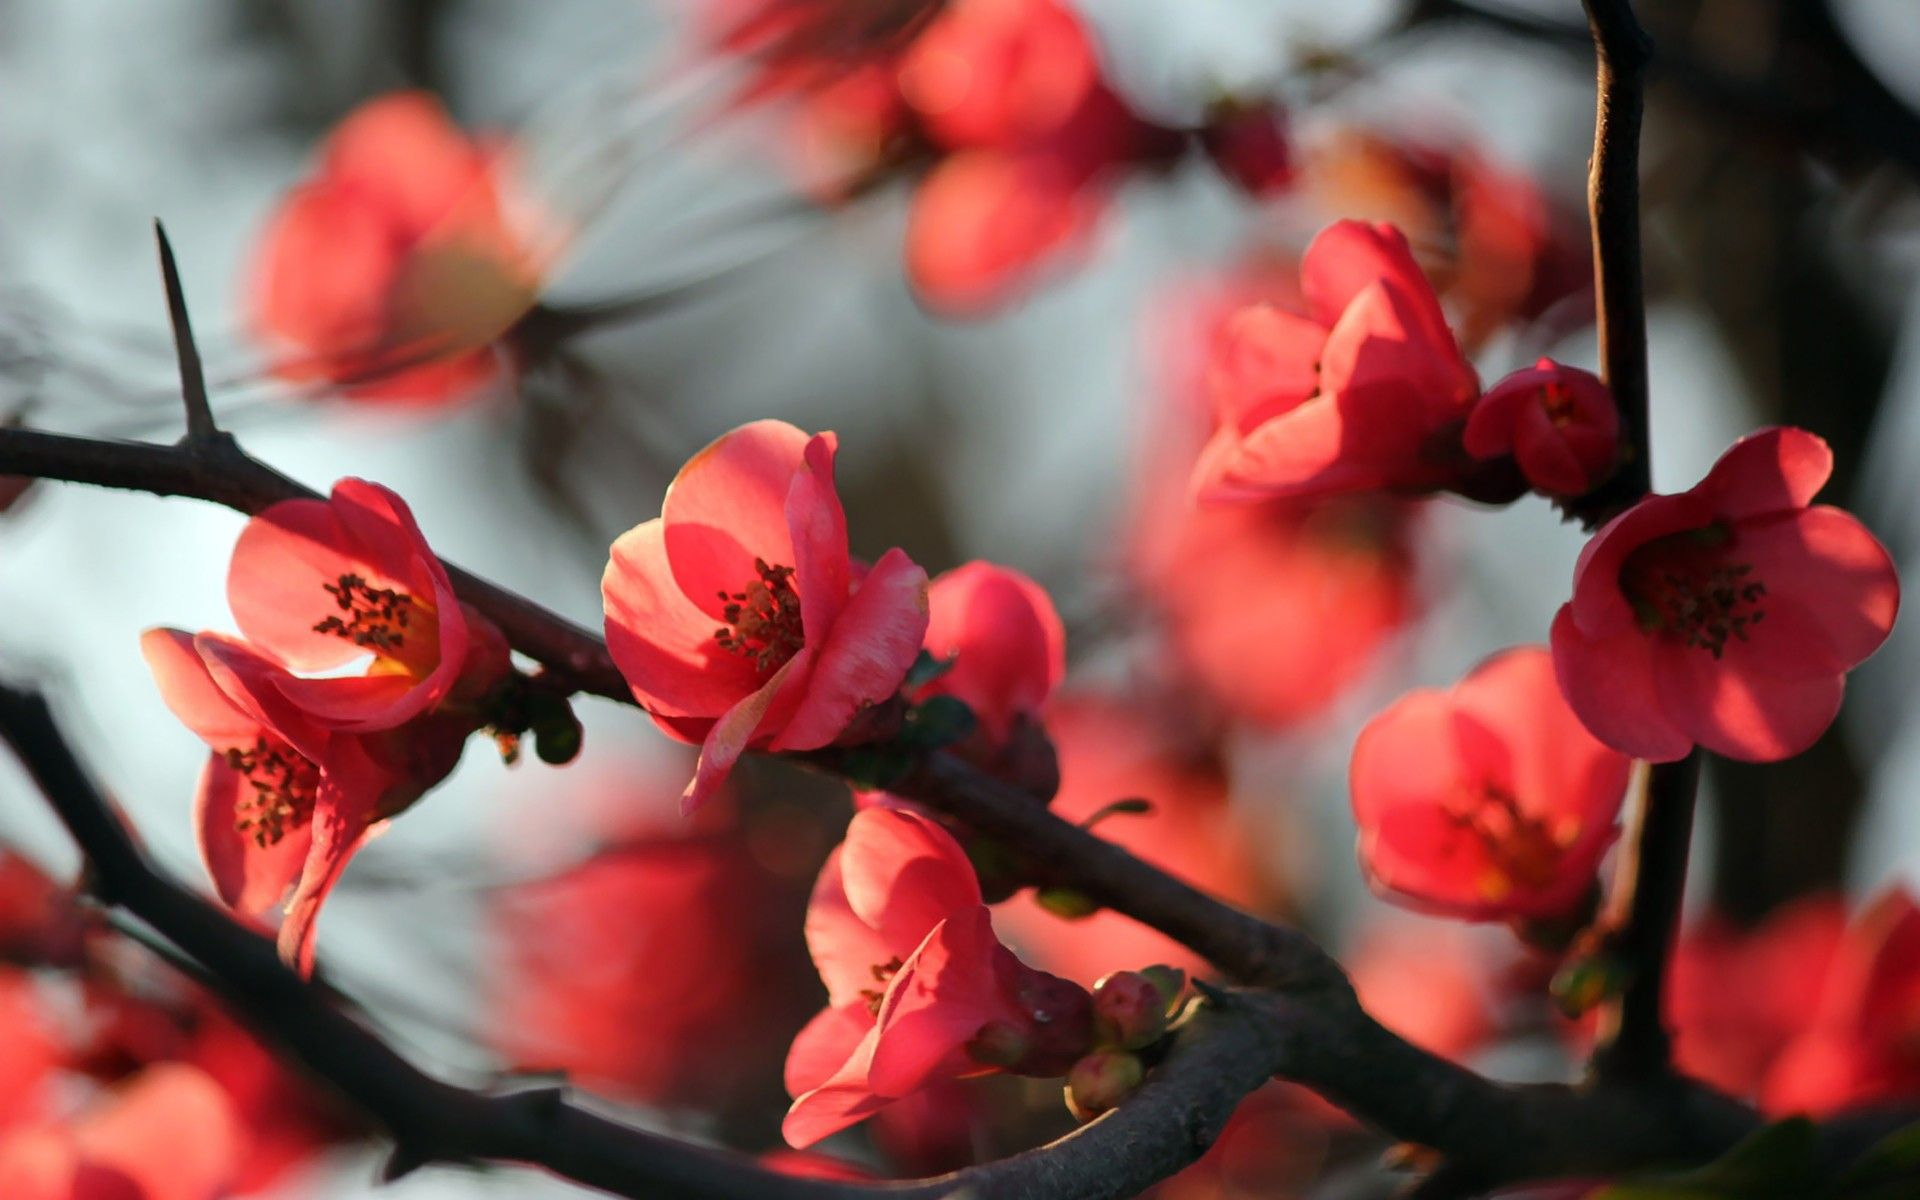 Nature Red Flowers Fleurs Pinterest Red Flowers Flowers And